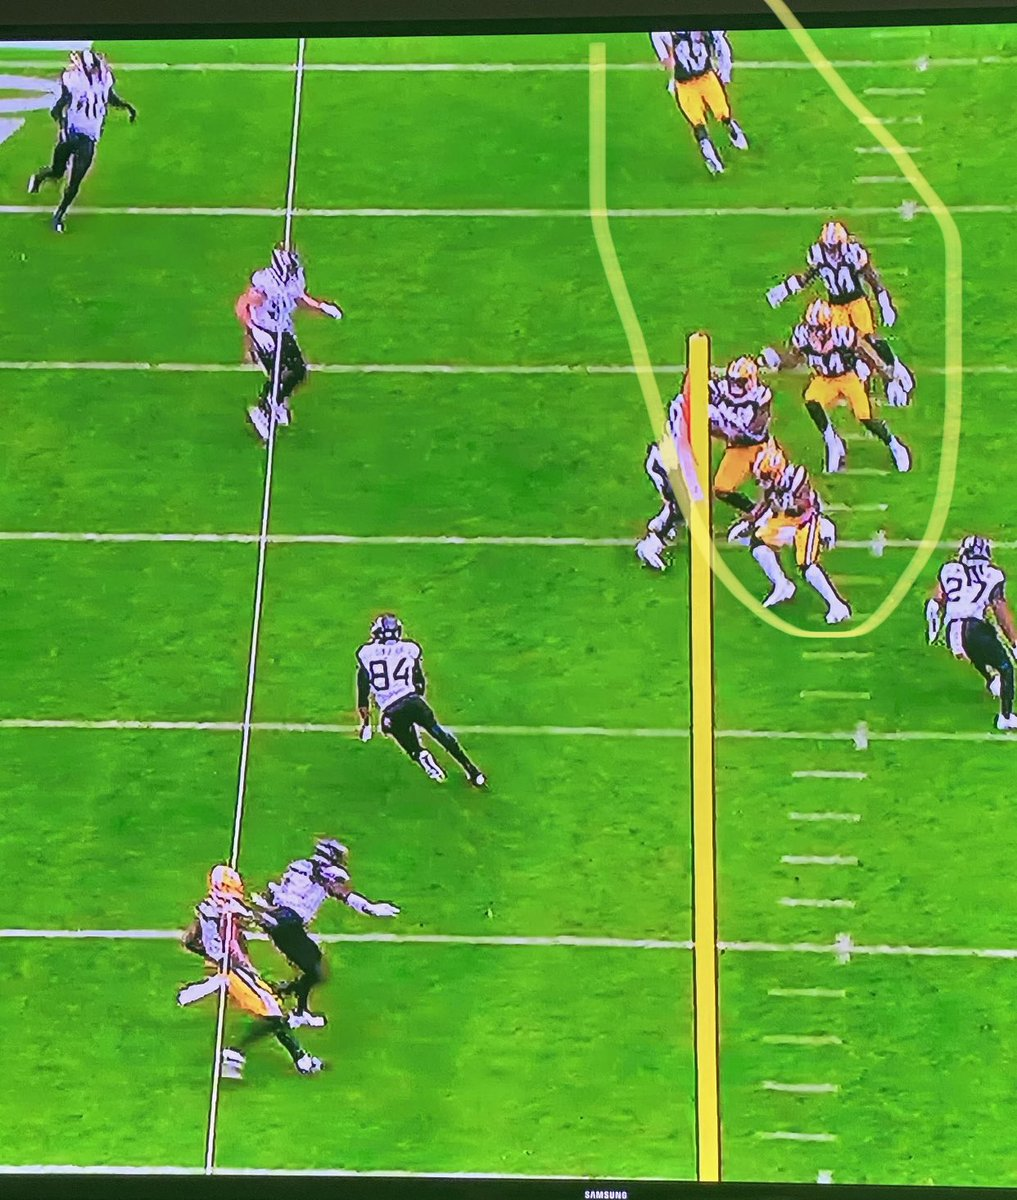 """""""He outkicked his coverage"""" is such a lazy way to blame the punter and not explain the coverage team's responsibilities..  Now should JK Scott have hit it that low and far? No.. but see also  🗣🗣 5 GUYS COVERING THE SAME EXACT LANE  They should look like a net.. """"Lane integrity"""""""